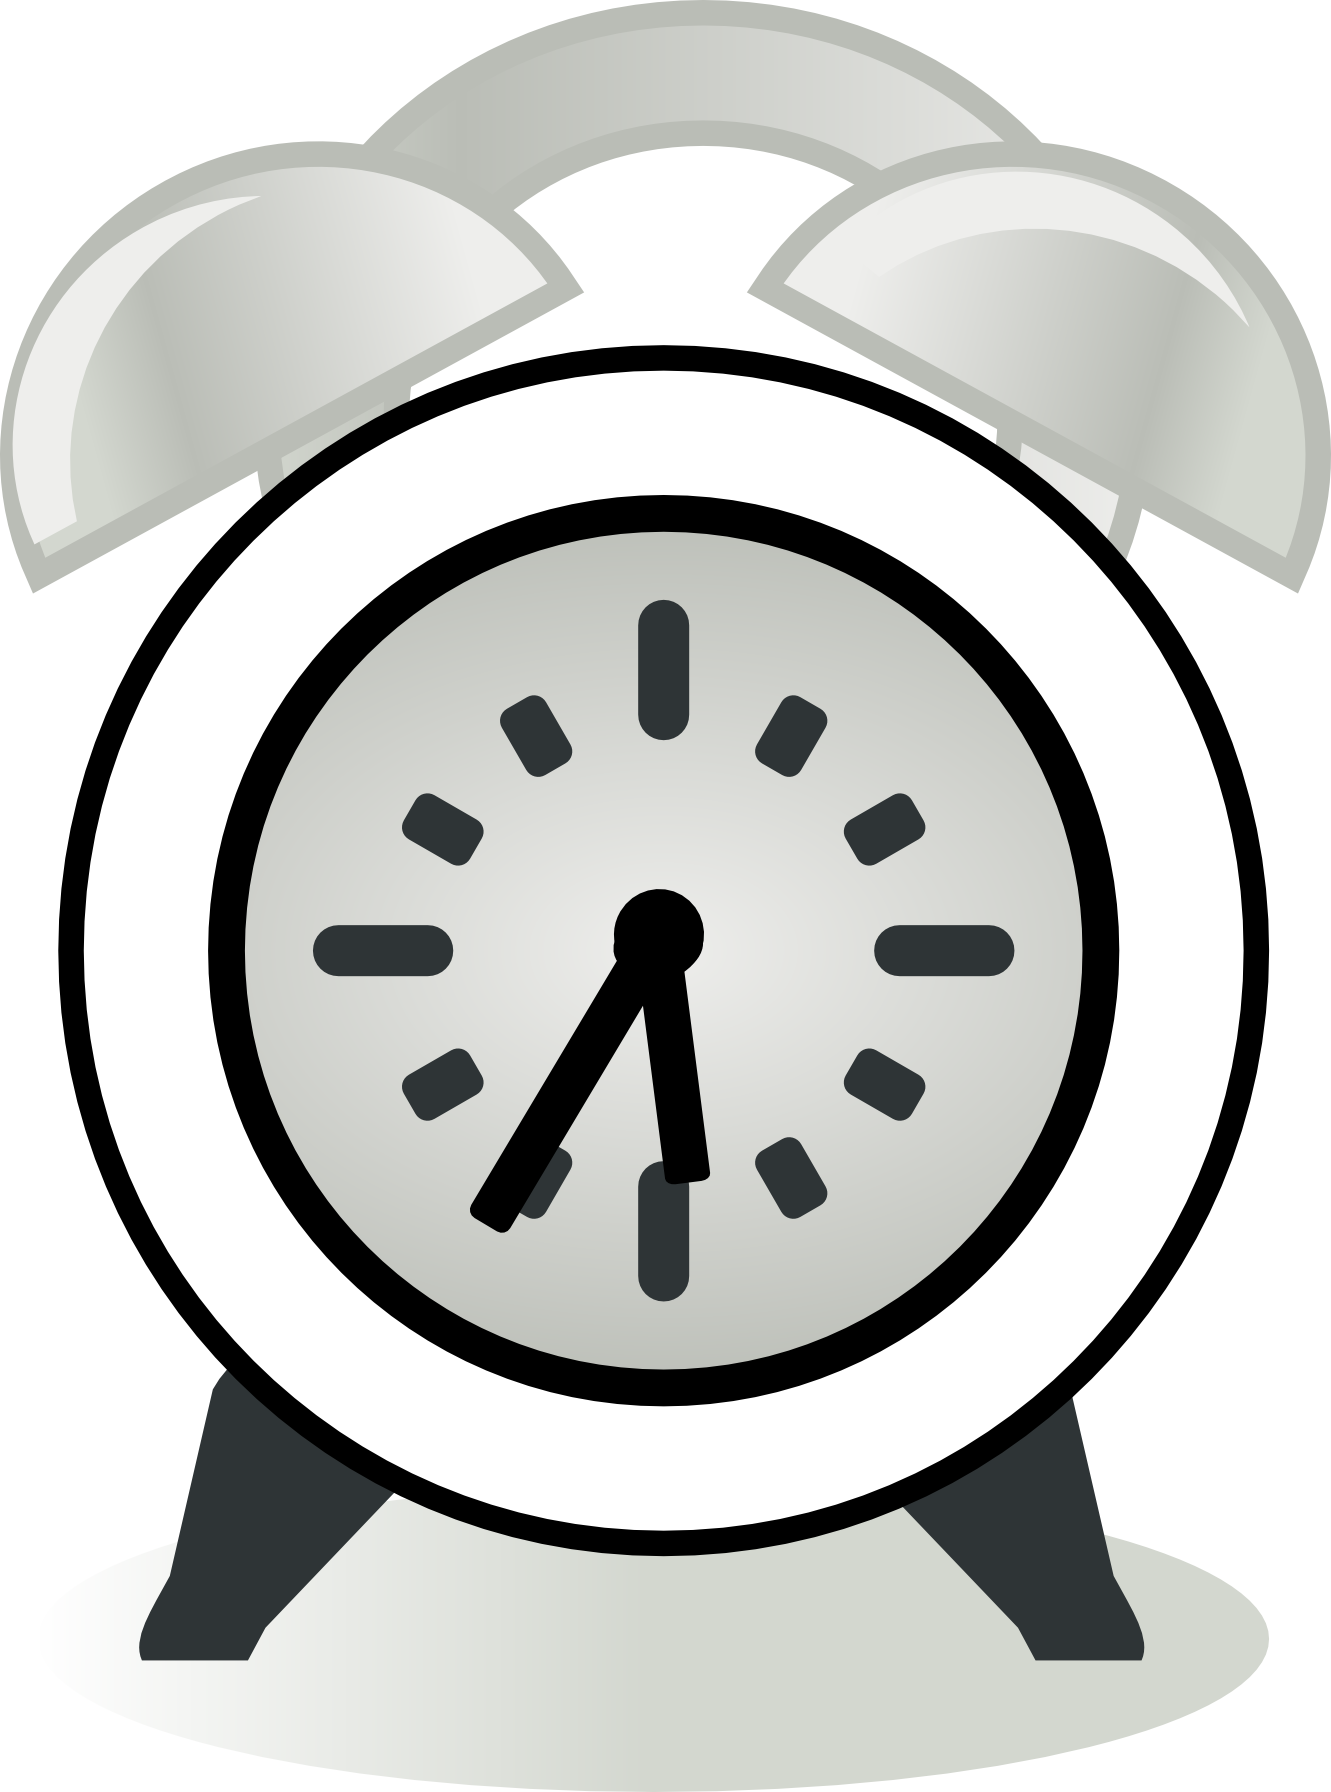 Black And White Clock Clipart